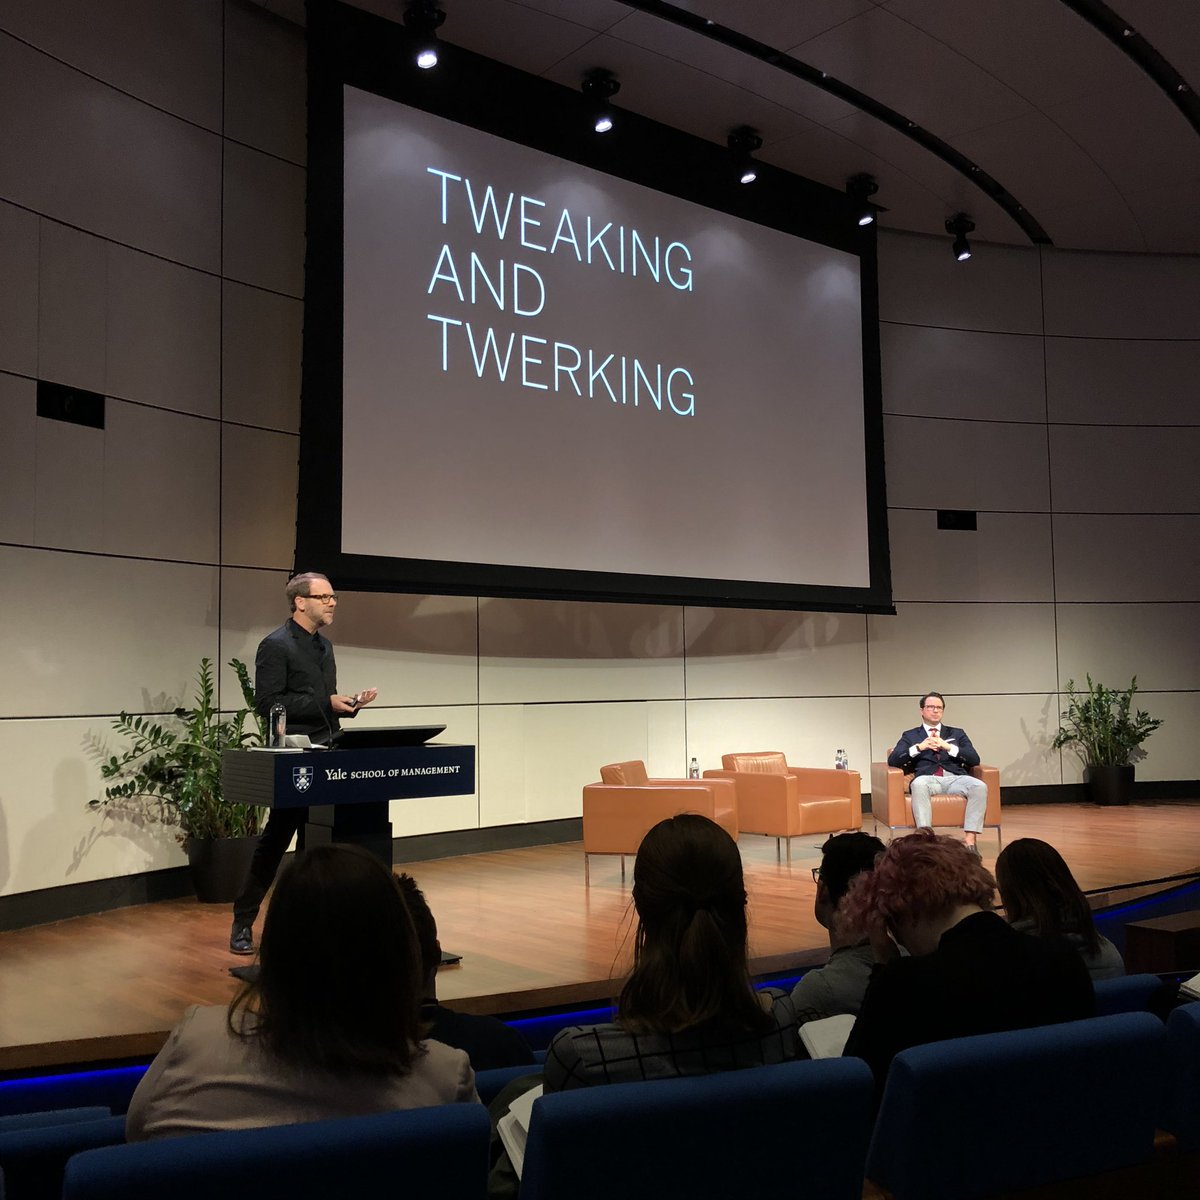 Watching @abbottmiller of @pentagram talk about tweaking and twerking with @claytonIII of @AmericanExpress was a highlight of the @DesignObserver conference for me. The biggest ideas can often require focusing on the smallest of details.